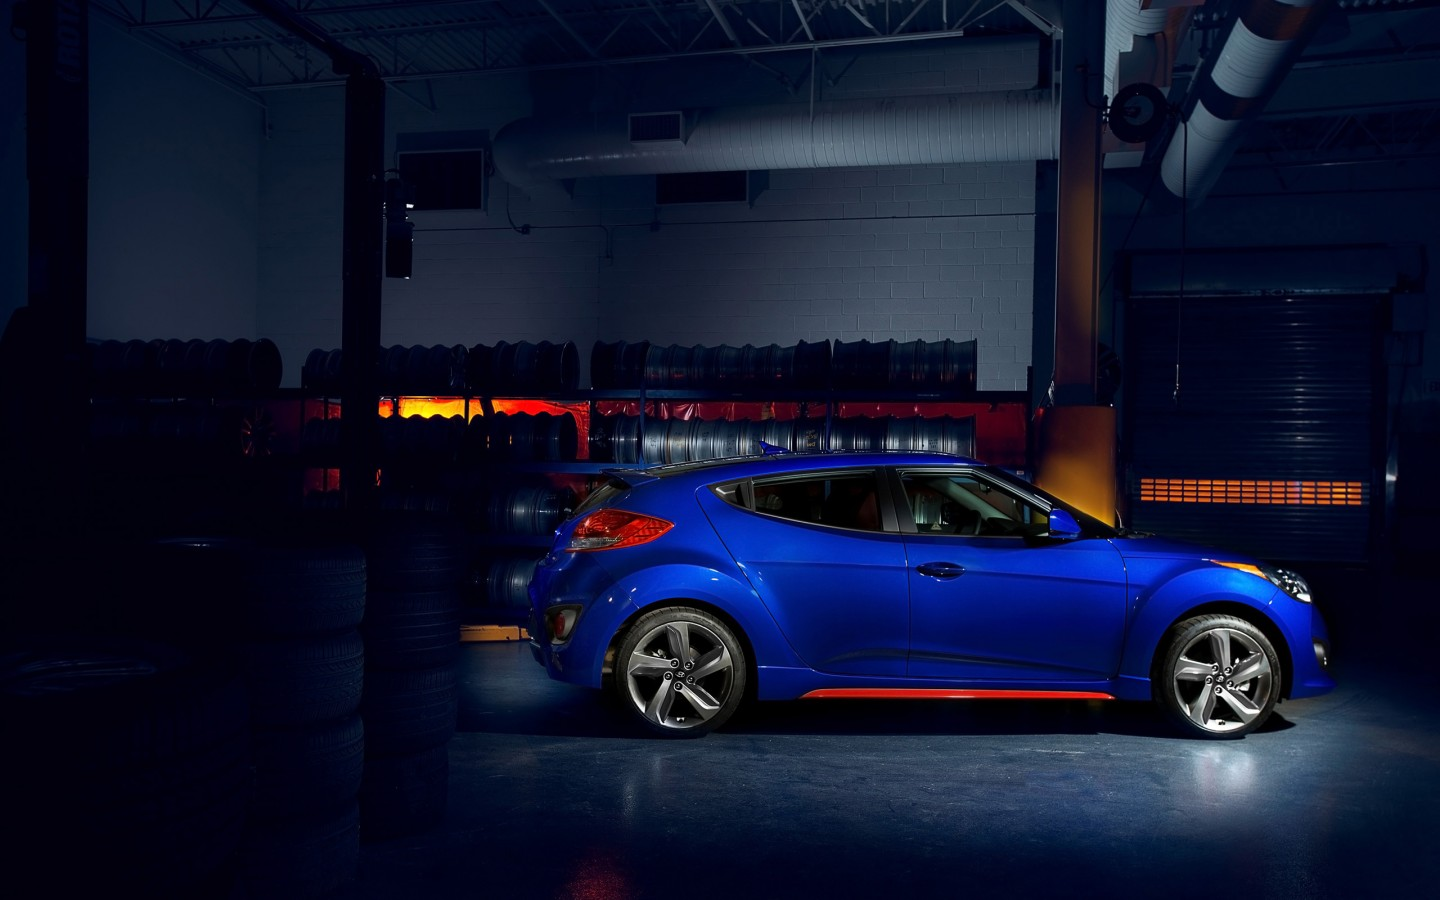 2015 hyundai veloster turbo r spec 2 wallpaper hd car wallpapers id 4889. Black Bedroom Furniture Sets. Home Design Ideas